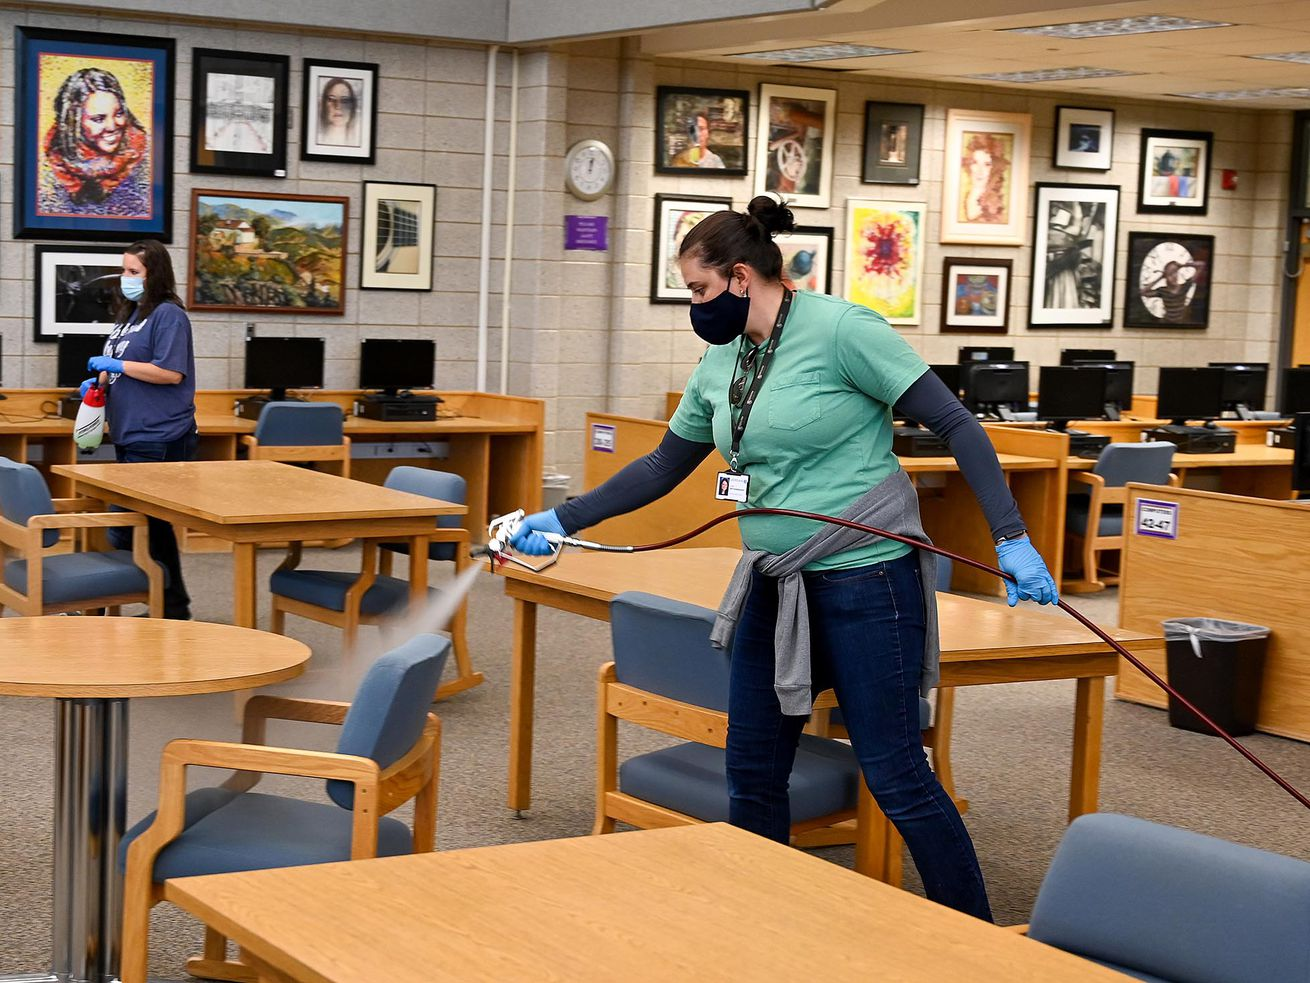 Riverton High School cleaning crews spray tables and chairs in an effort to battle the coronavirus pandemic on Sept. 17, 2020.